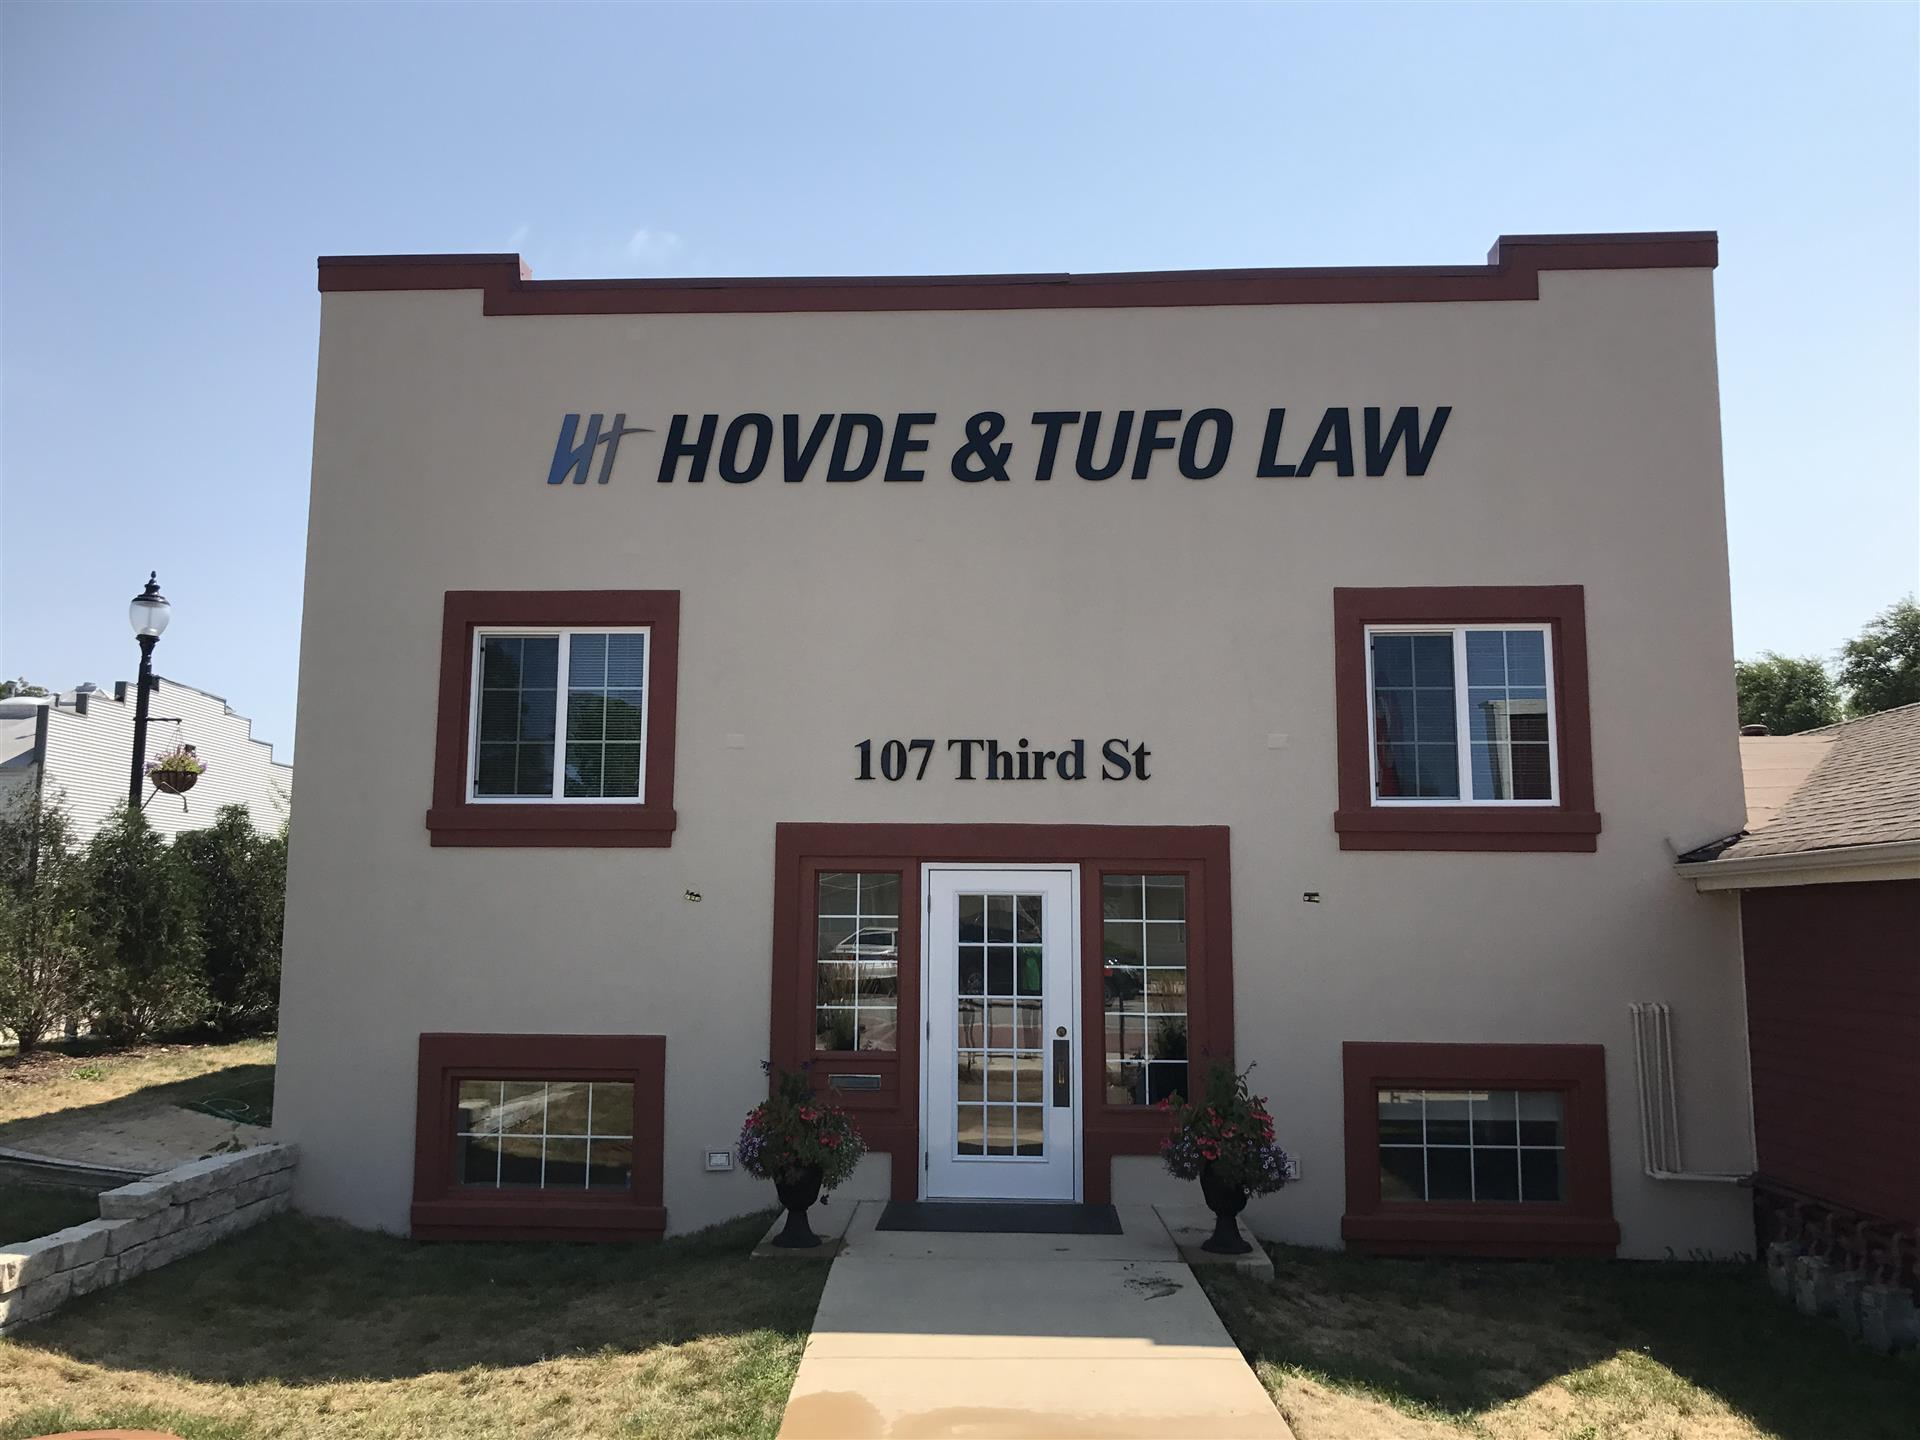 Hovde & Tufo Law Wall Sign